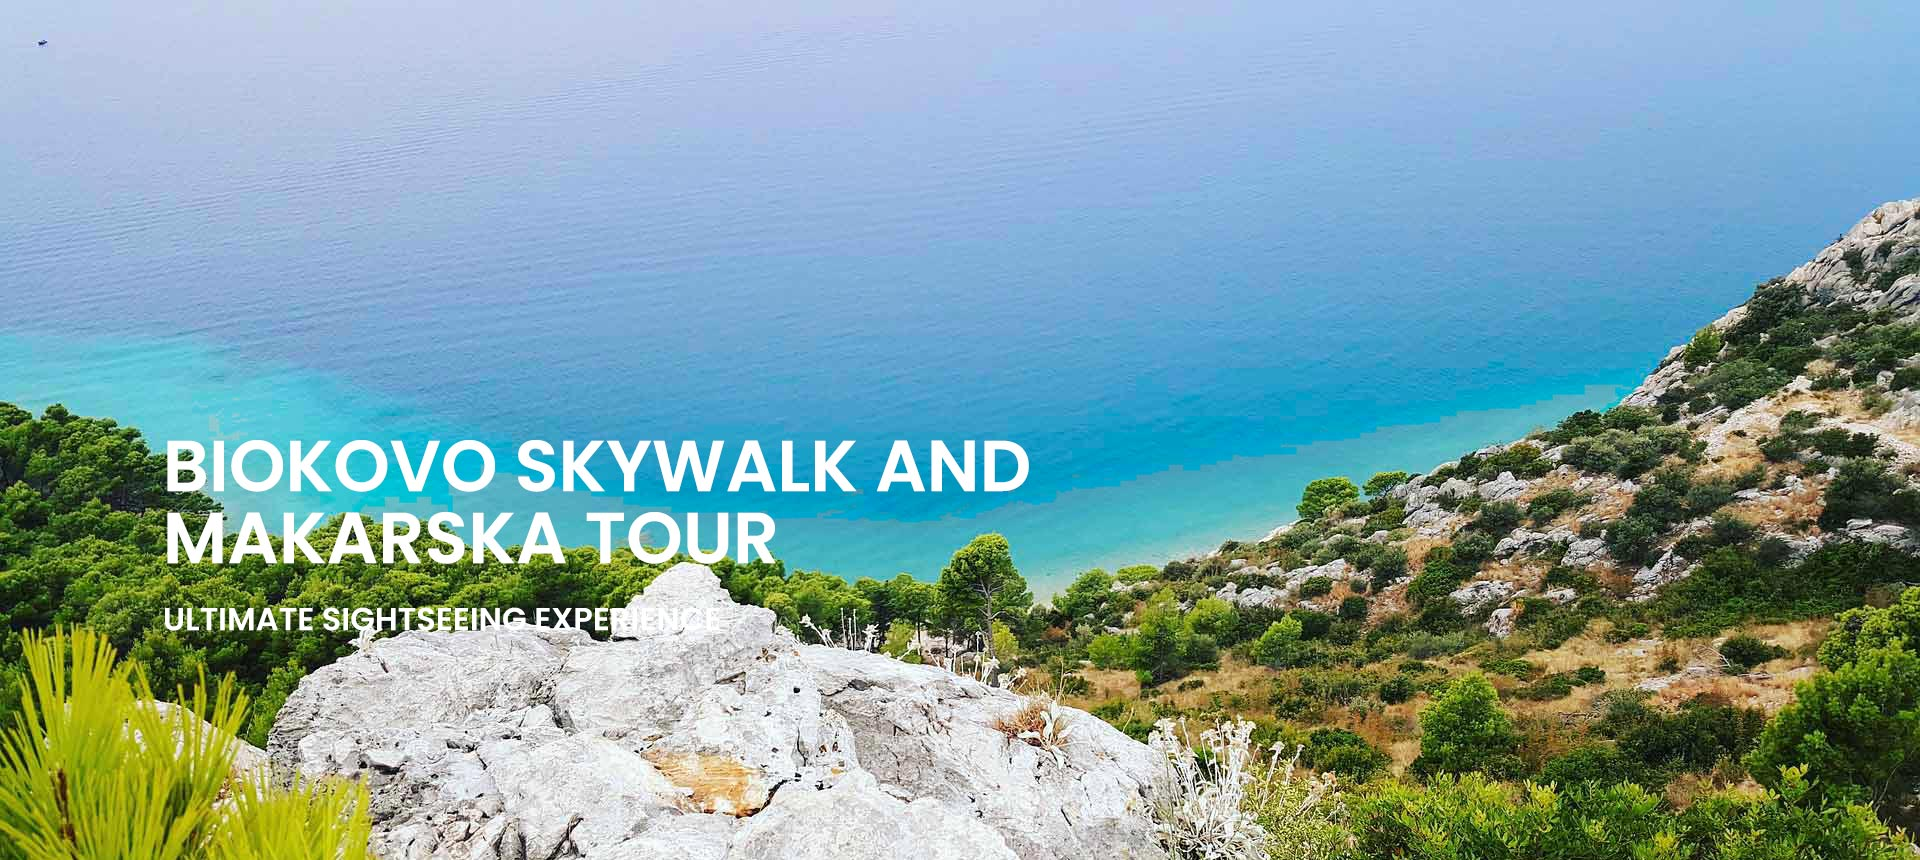 Biokovo skywalk tour